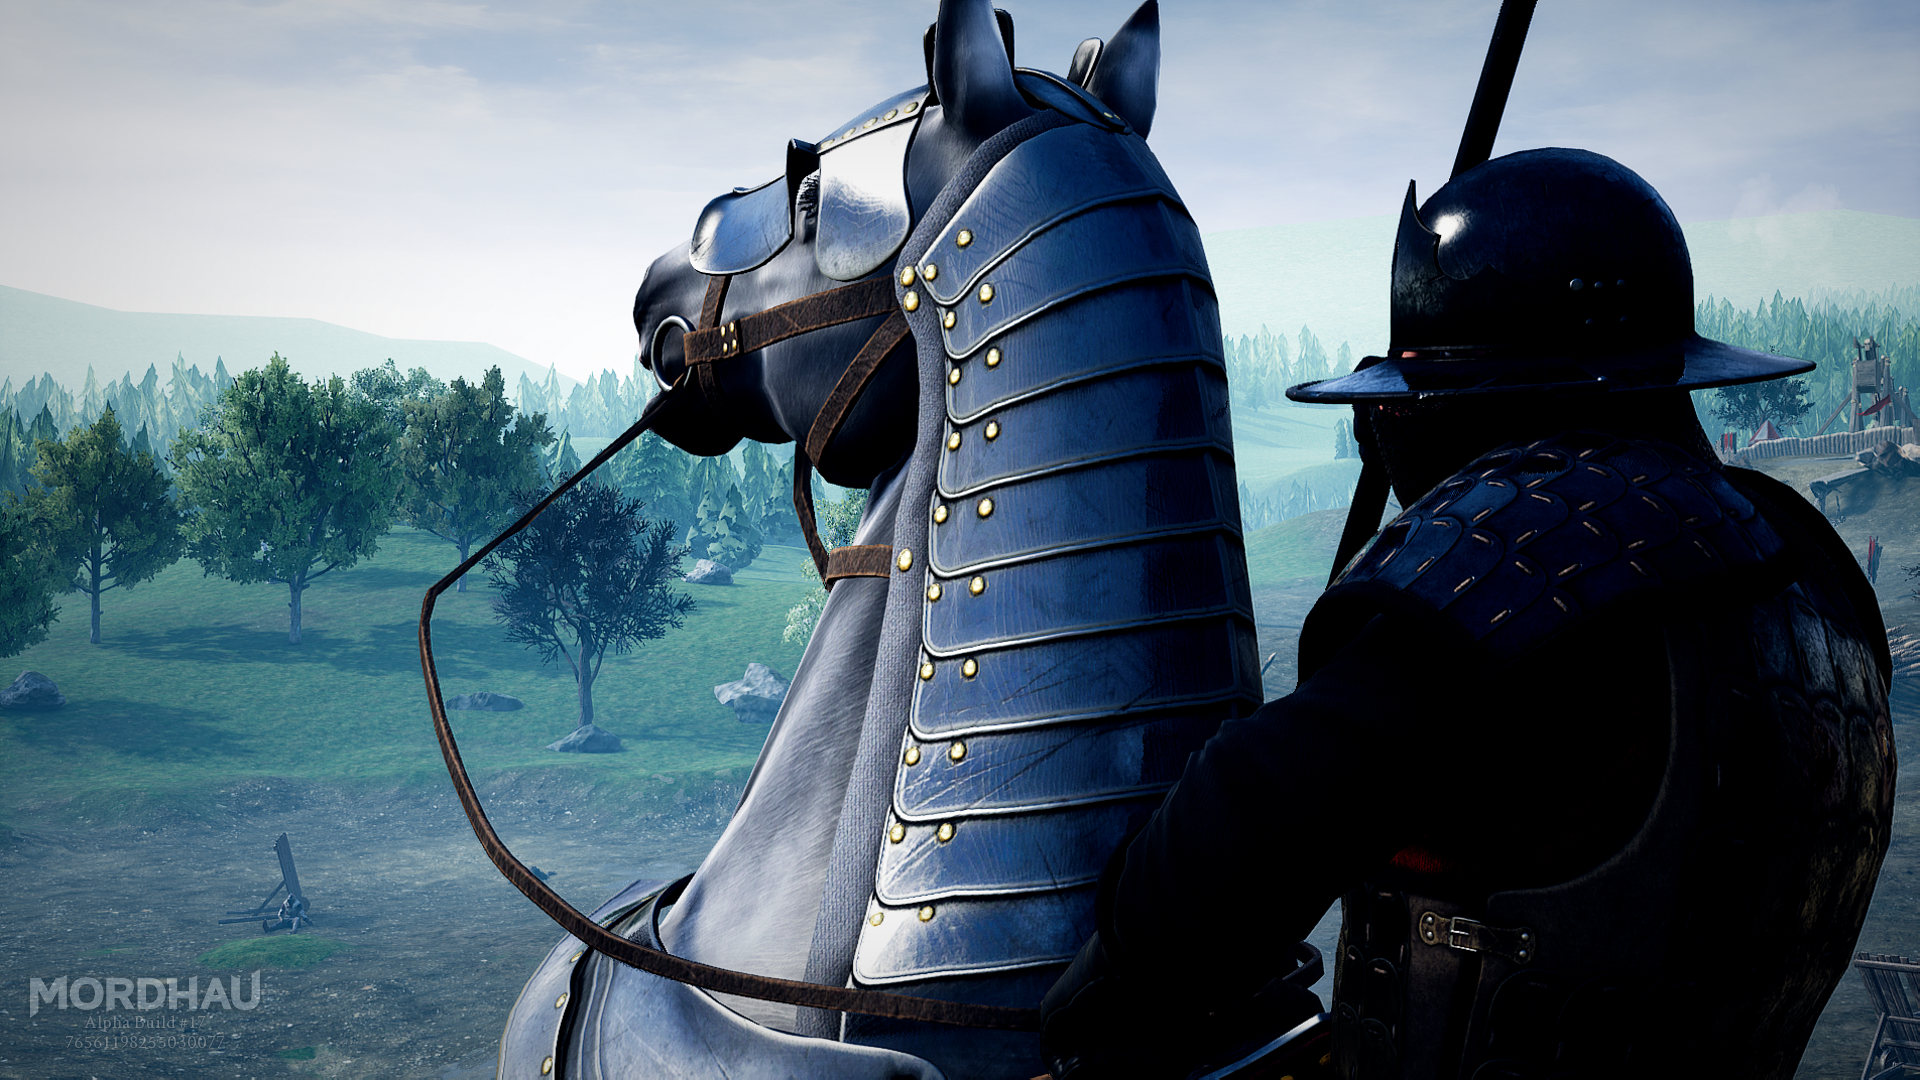 Mordhau-Win64-Shipping_2018-09-14_20-01-16.png